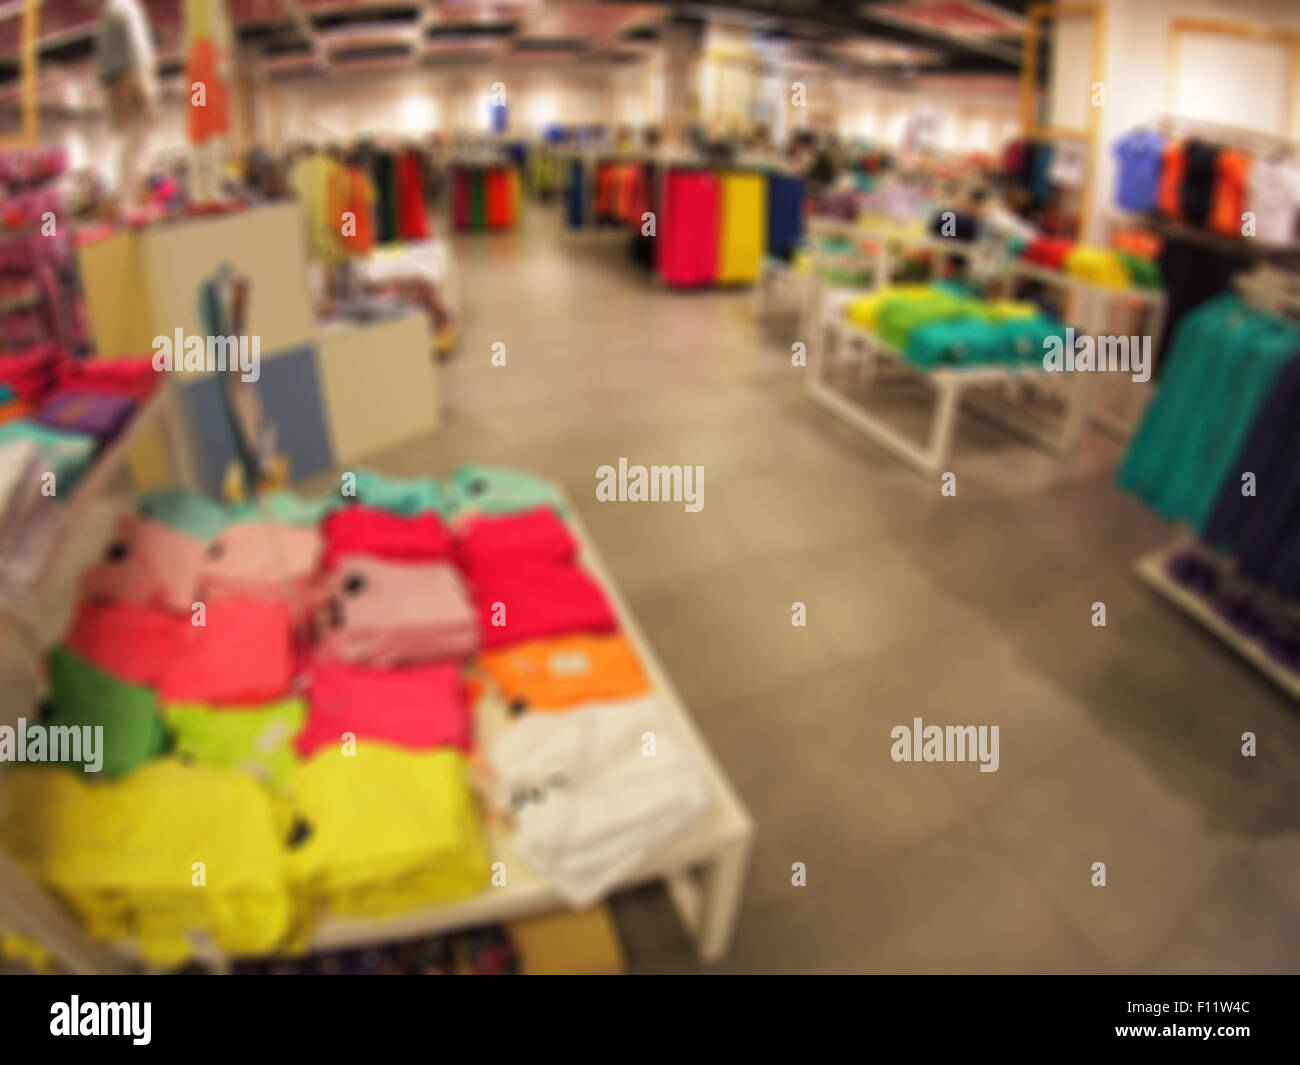 Defocused And Blurry Image Of The Interior Of A Clothing Store With Wide  Angle Distortion View Was Blurred For Use As Background